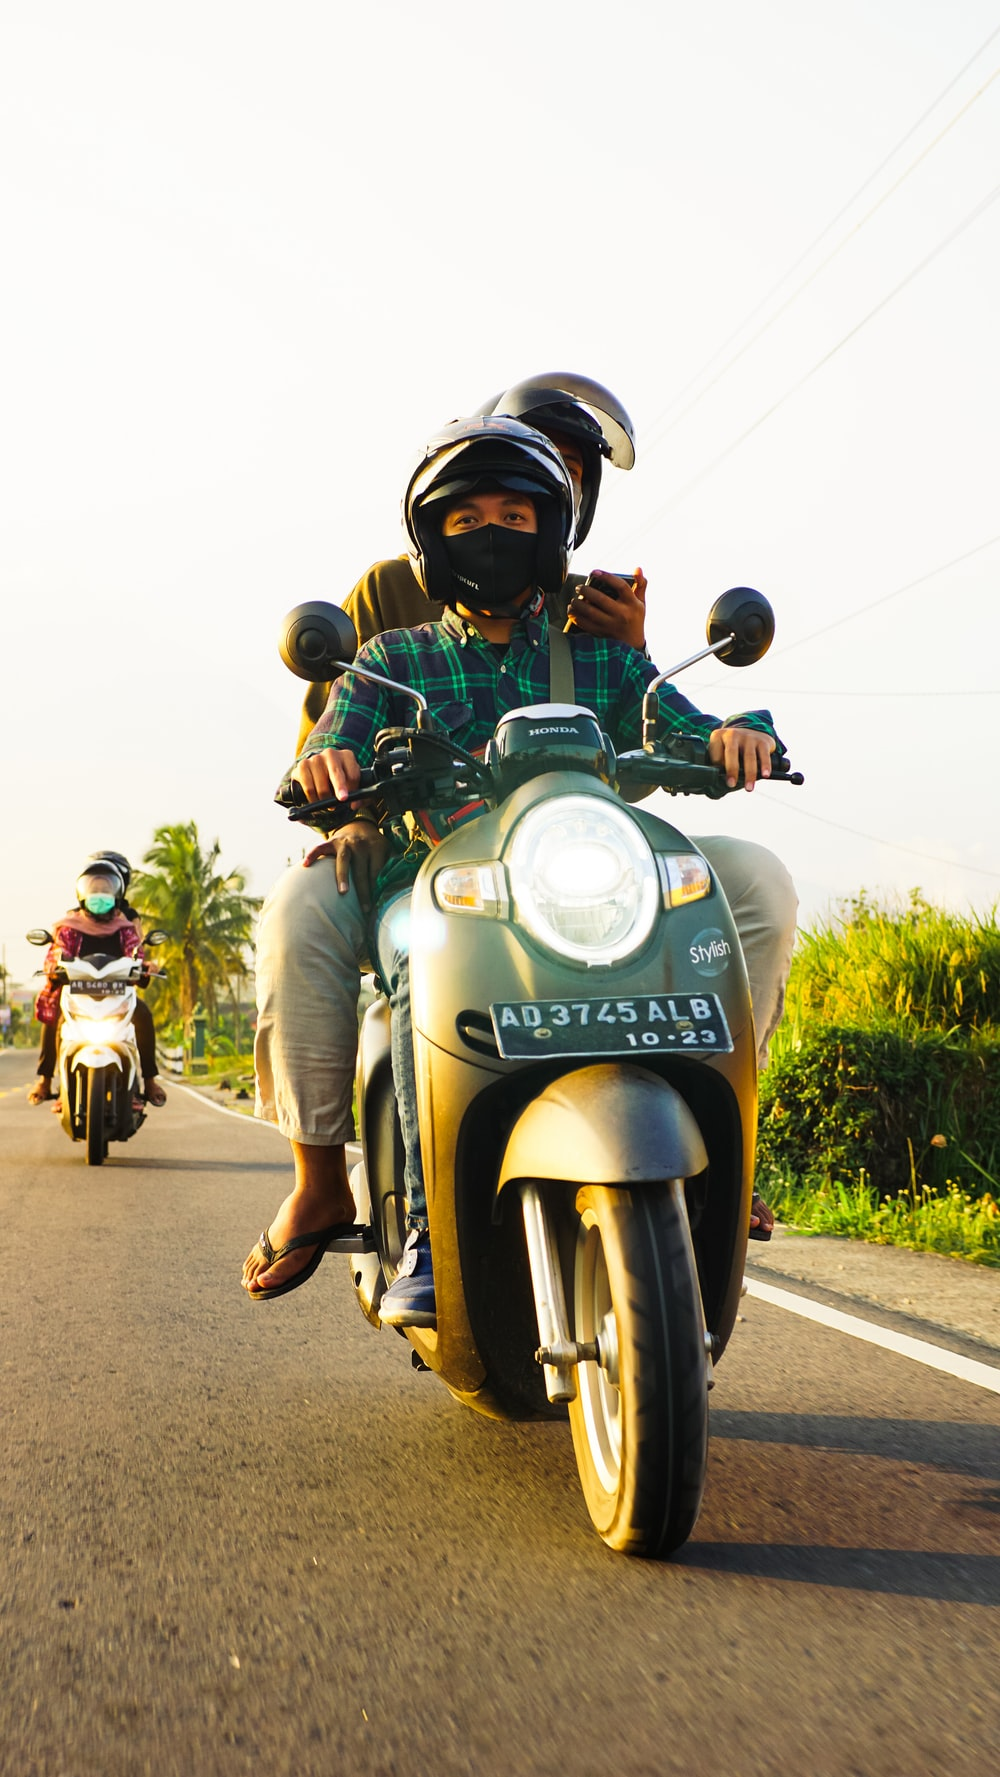 people riding motorcycle on road during daytime